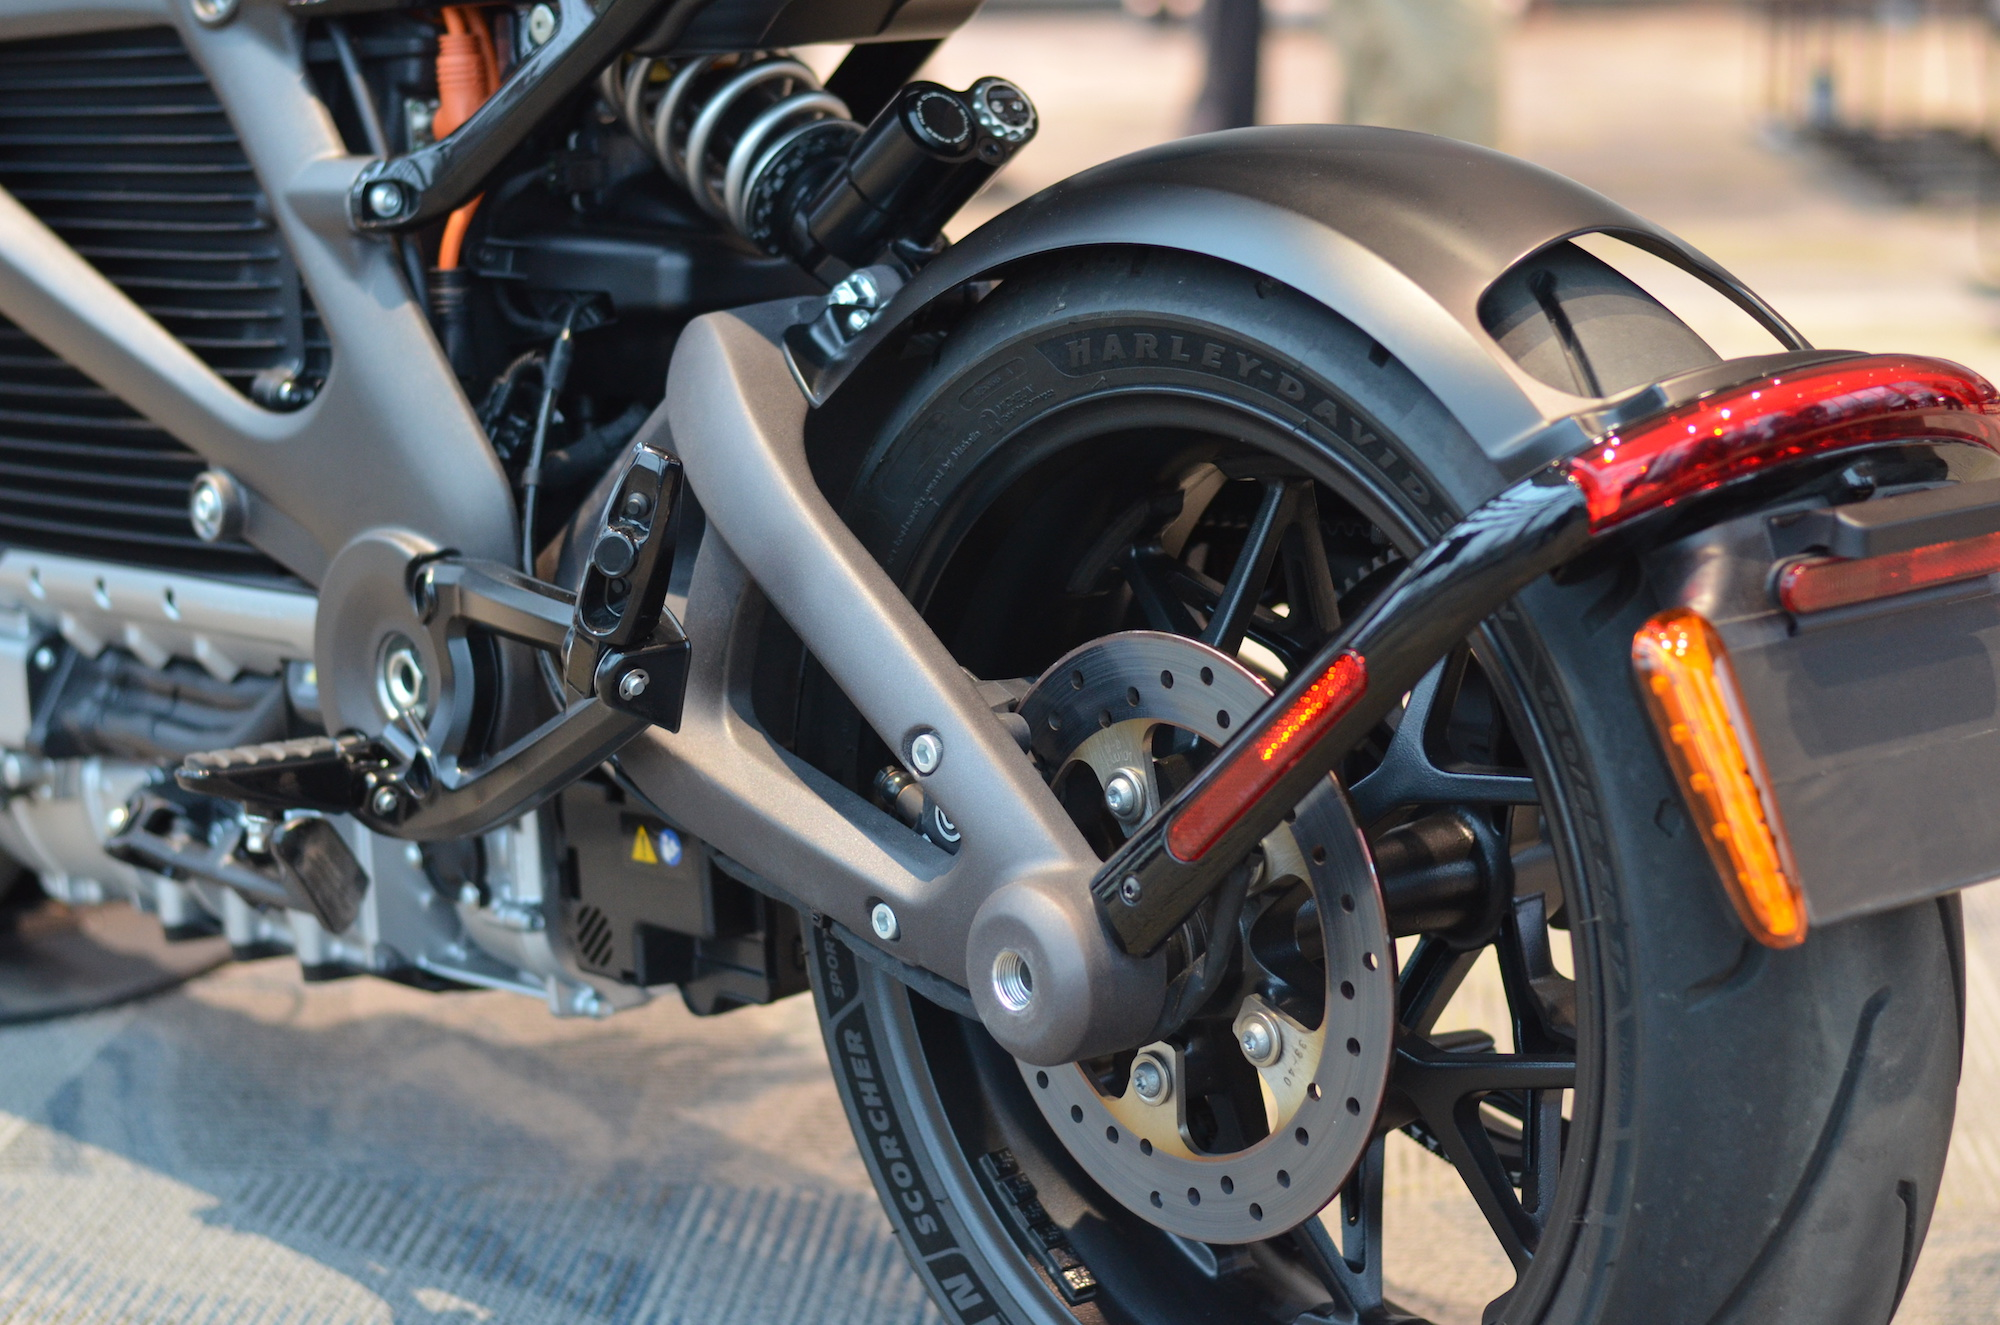 Harley-Davidson unveils LiveWire electric motorcycle price & 2 new EVs